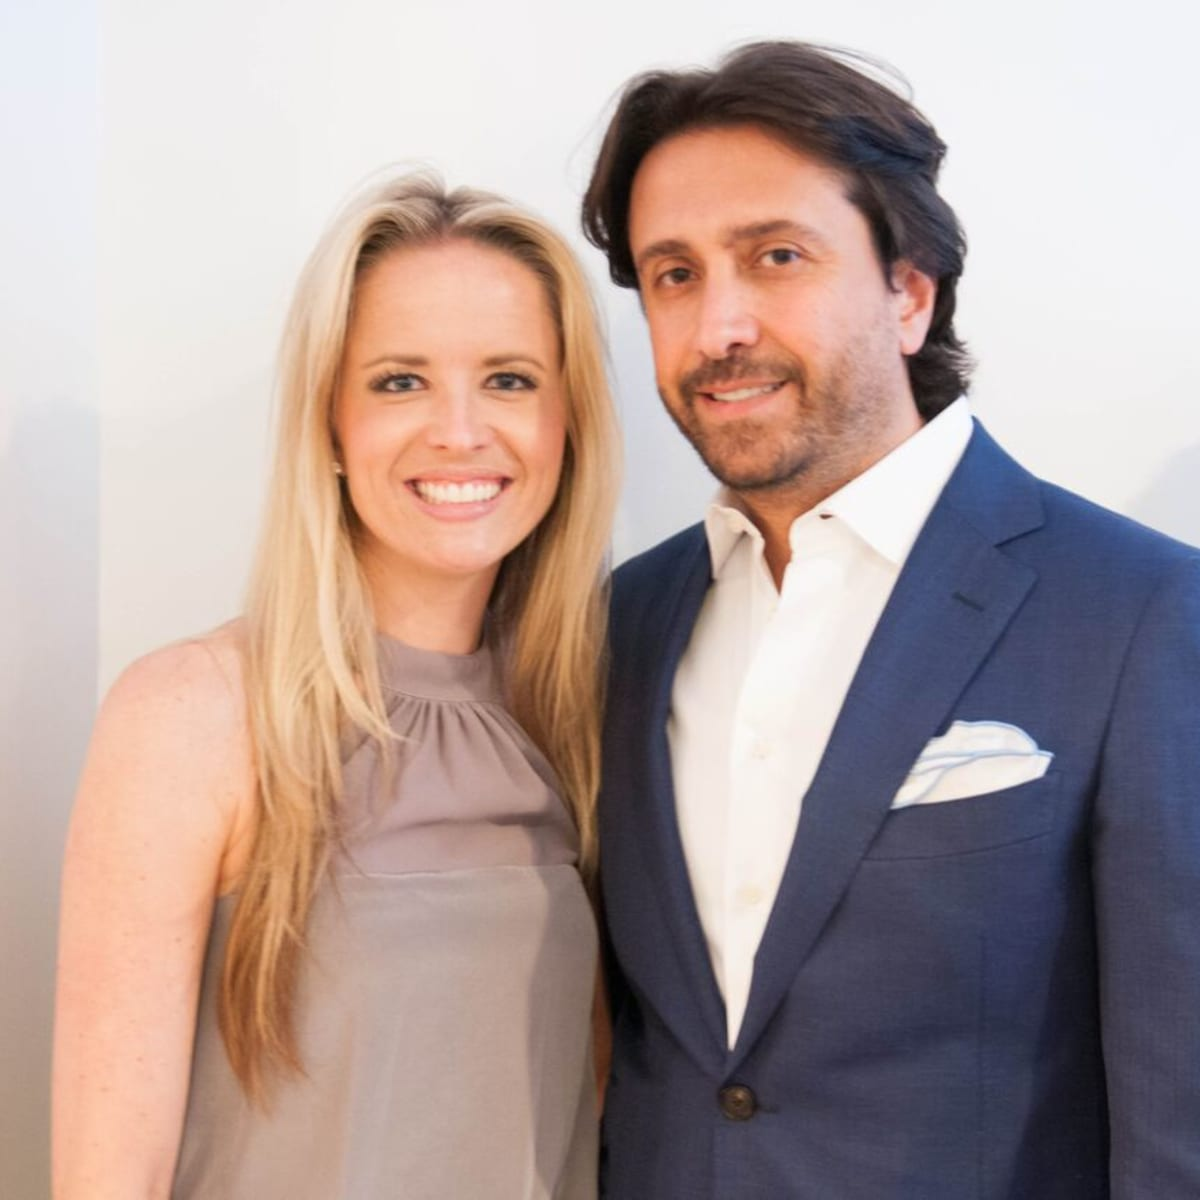 Houston, Engel and Völkers Launch Party, June 2015, Lauren Wren, Dany Daniel